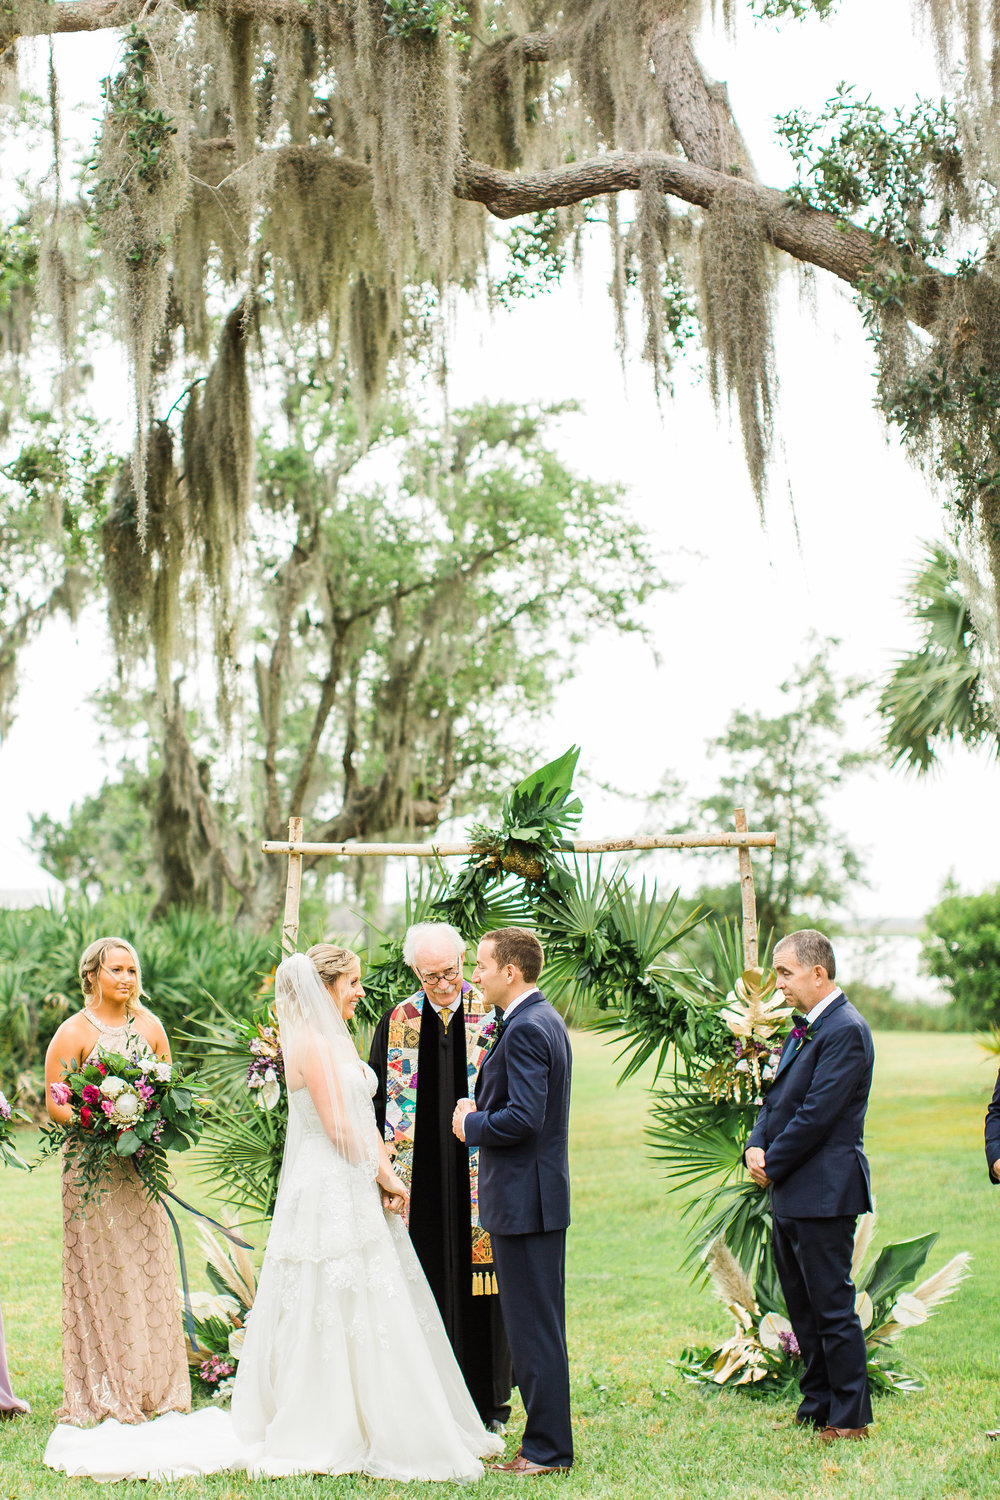 savannah-bridal-shop-i-and-b-couple-gretchen-and-alex-fun-and-unique-tropical-wedding-at-captains-bluff-st-simons-island-wedding-marianne-lucille-photography-23.jpg